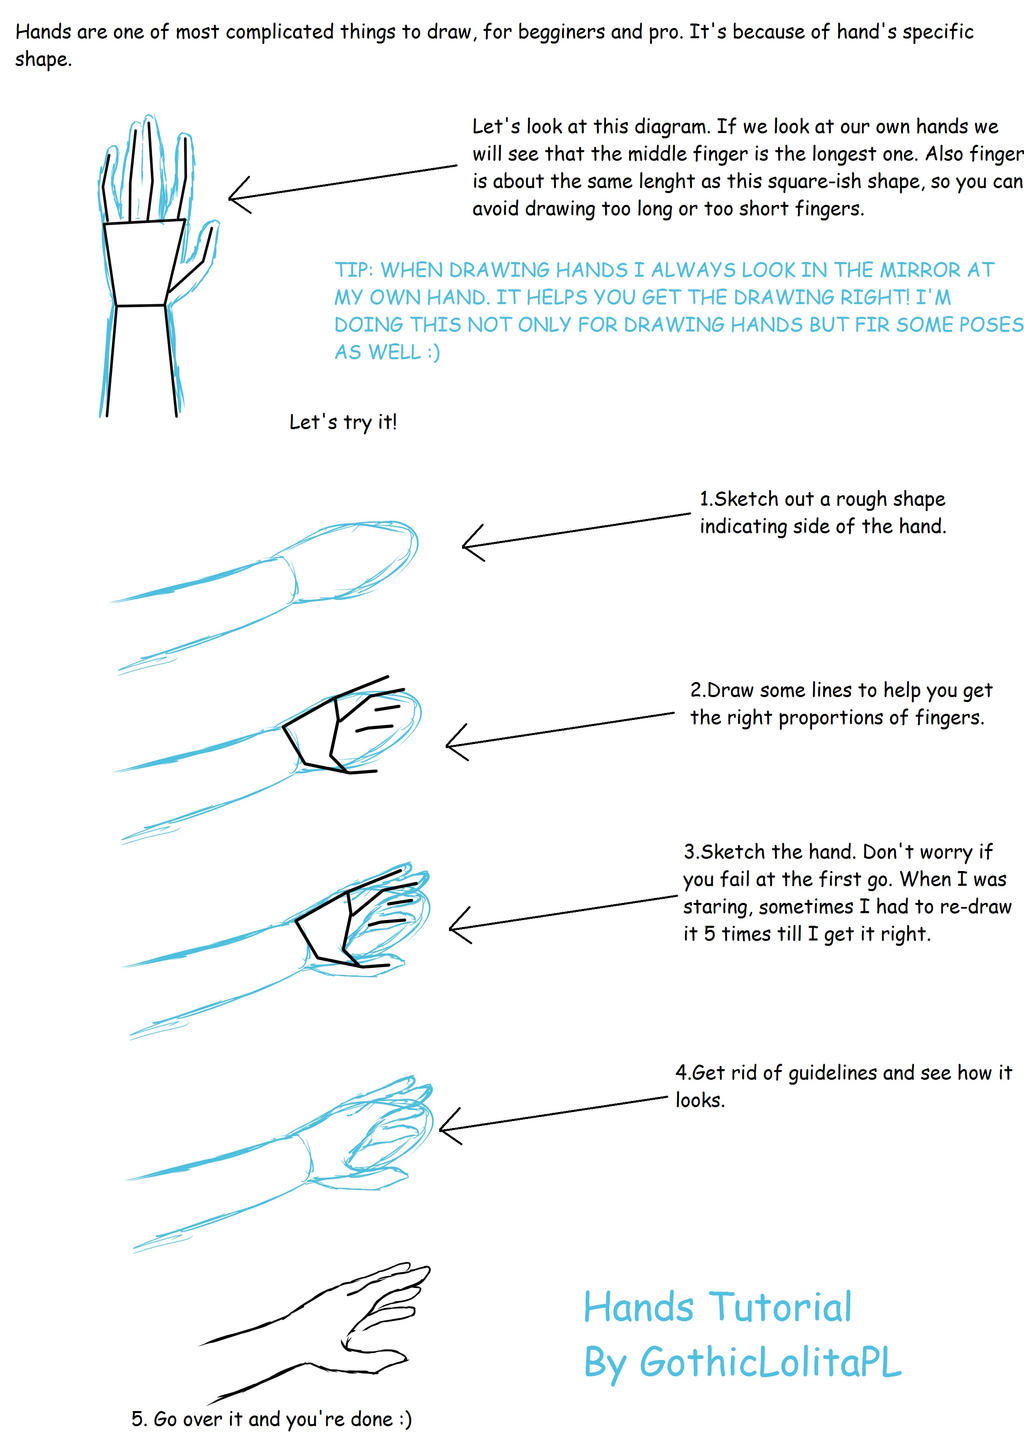 Tutorial #3 [Hands] by GothicLolitaPL